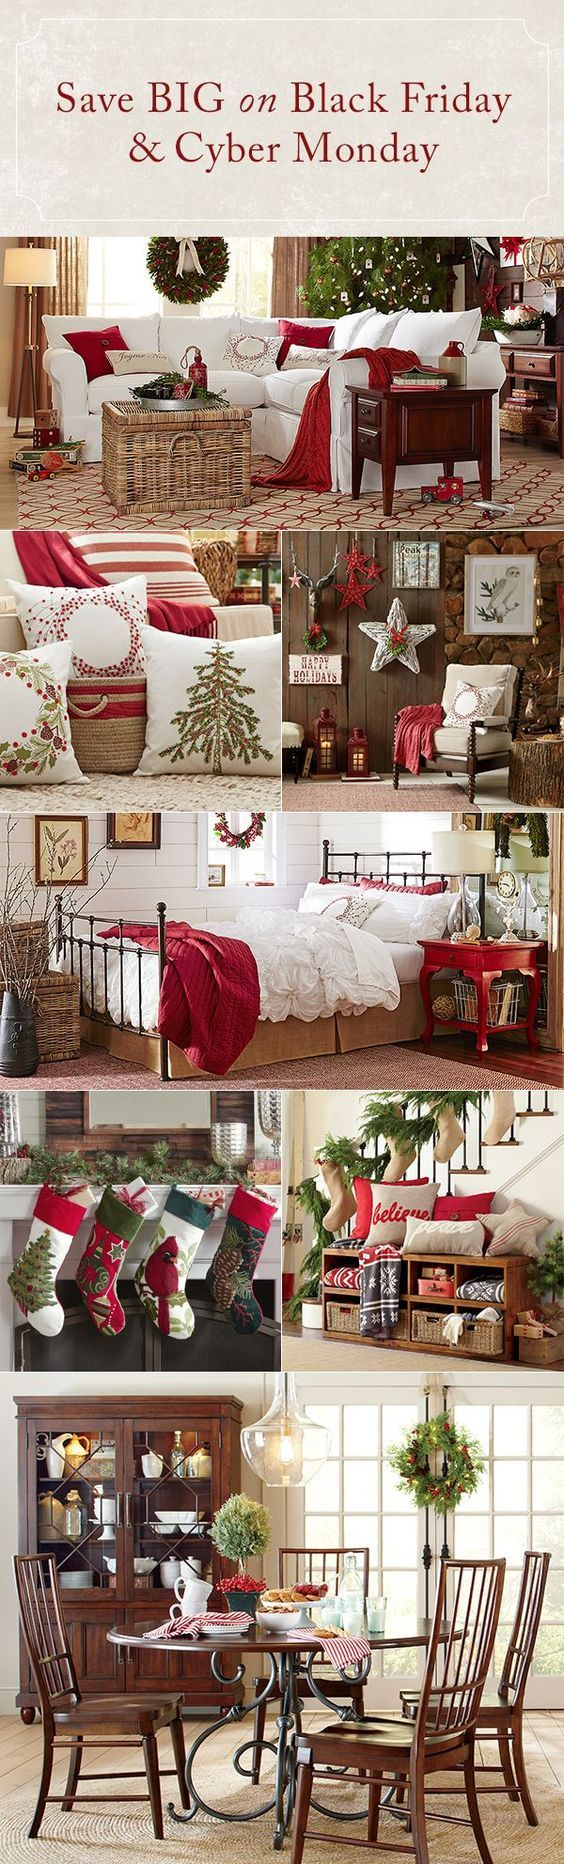 106 best images about christmas on pinterest shabby chic